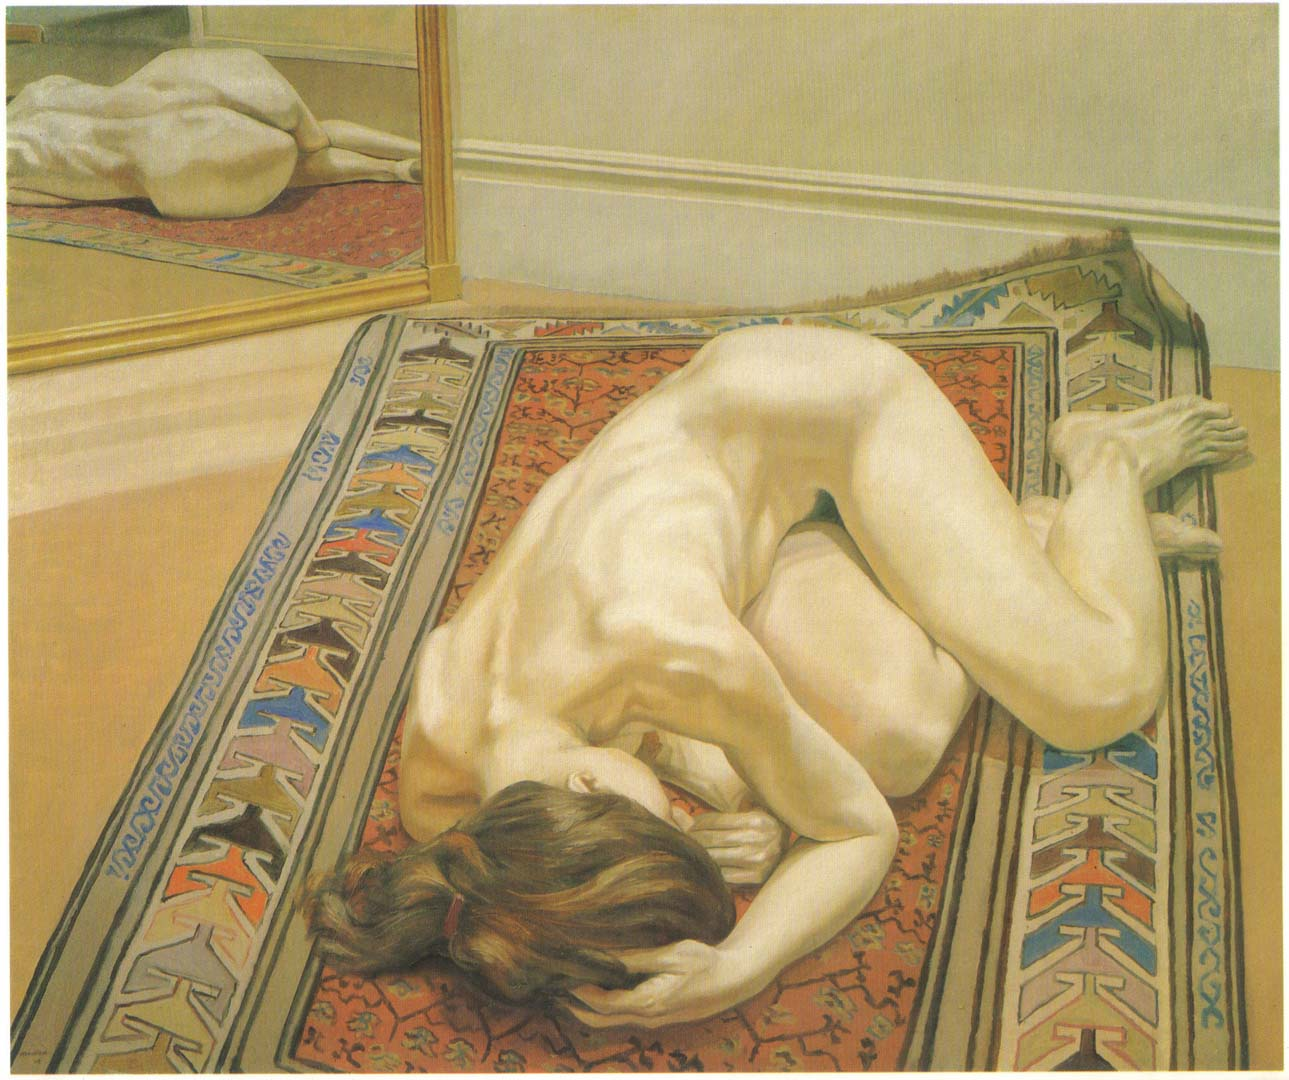 1968 Reclining Nude on Oriental Rug with Mirror Oil on Canvas 60 x 72